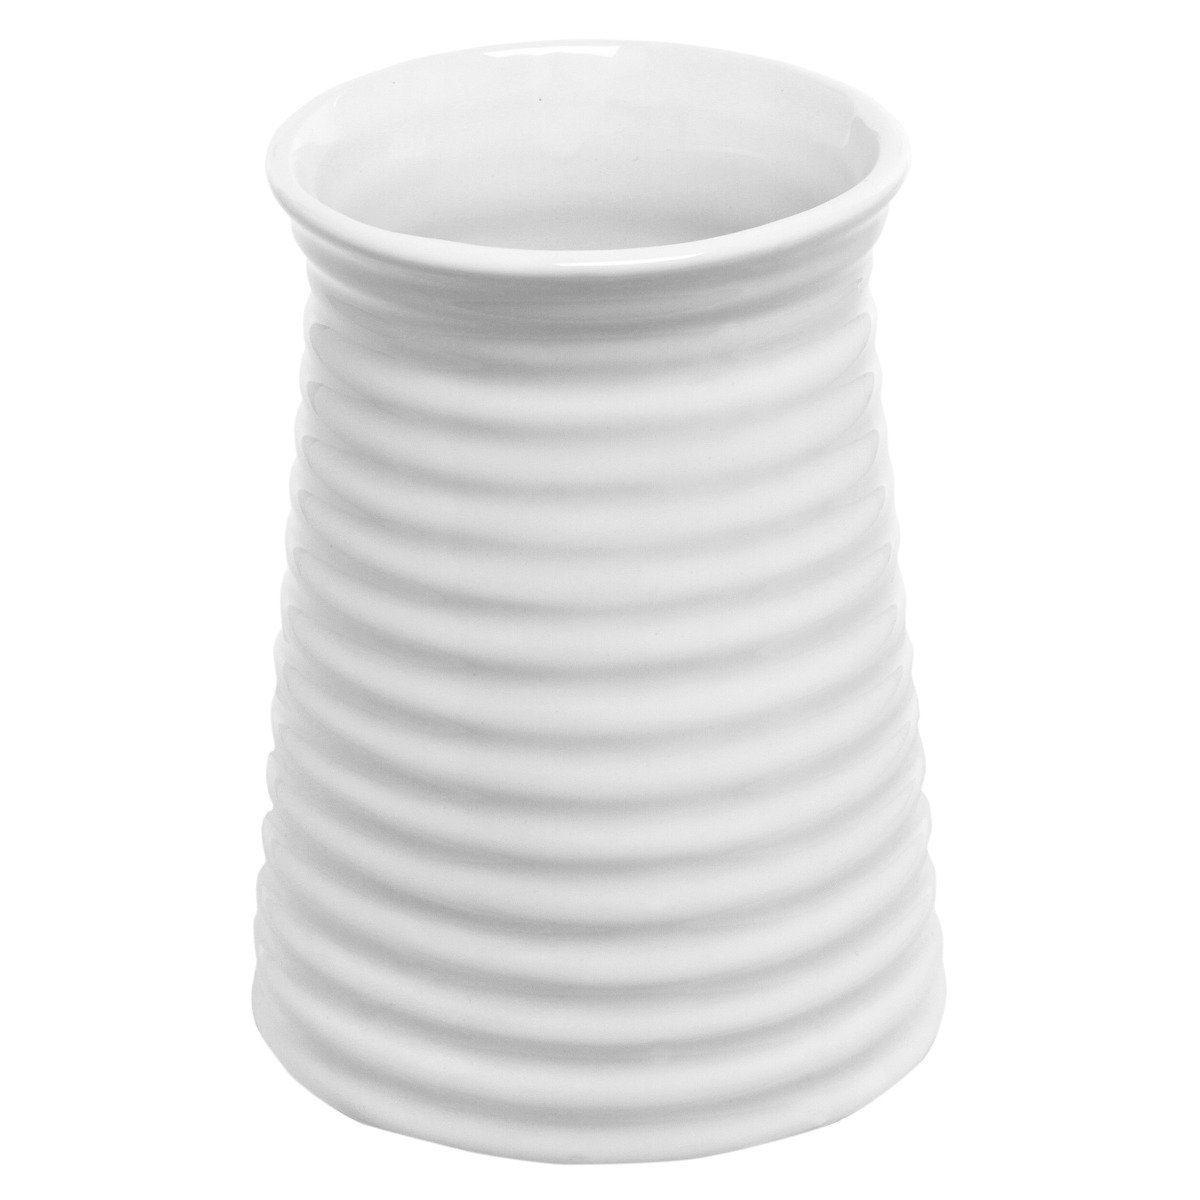 5.7 inch Modern Ribbed Design Small White Ceramic Decorative Tabletop Centerpiece Vase / Flower Pot by MyGift